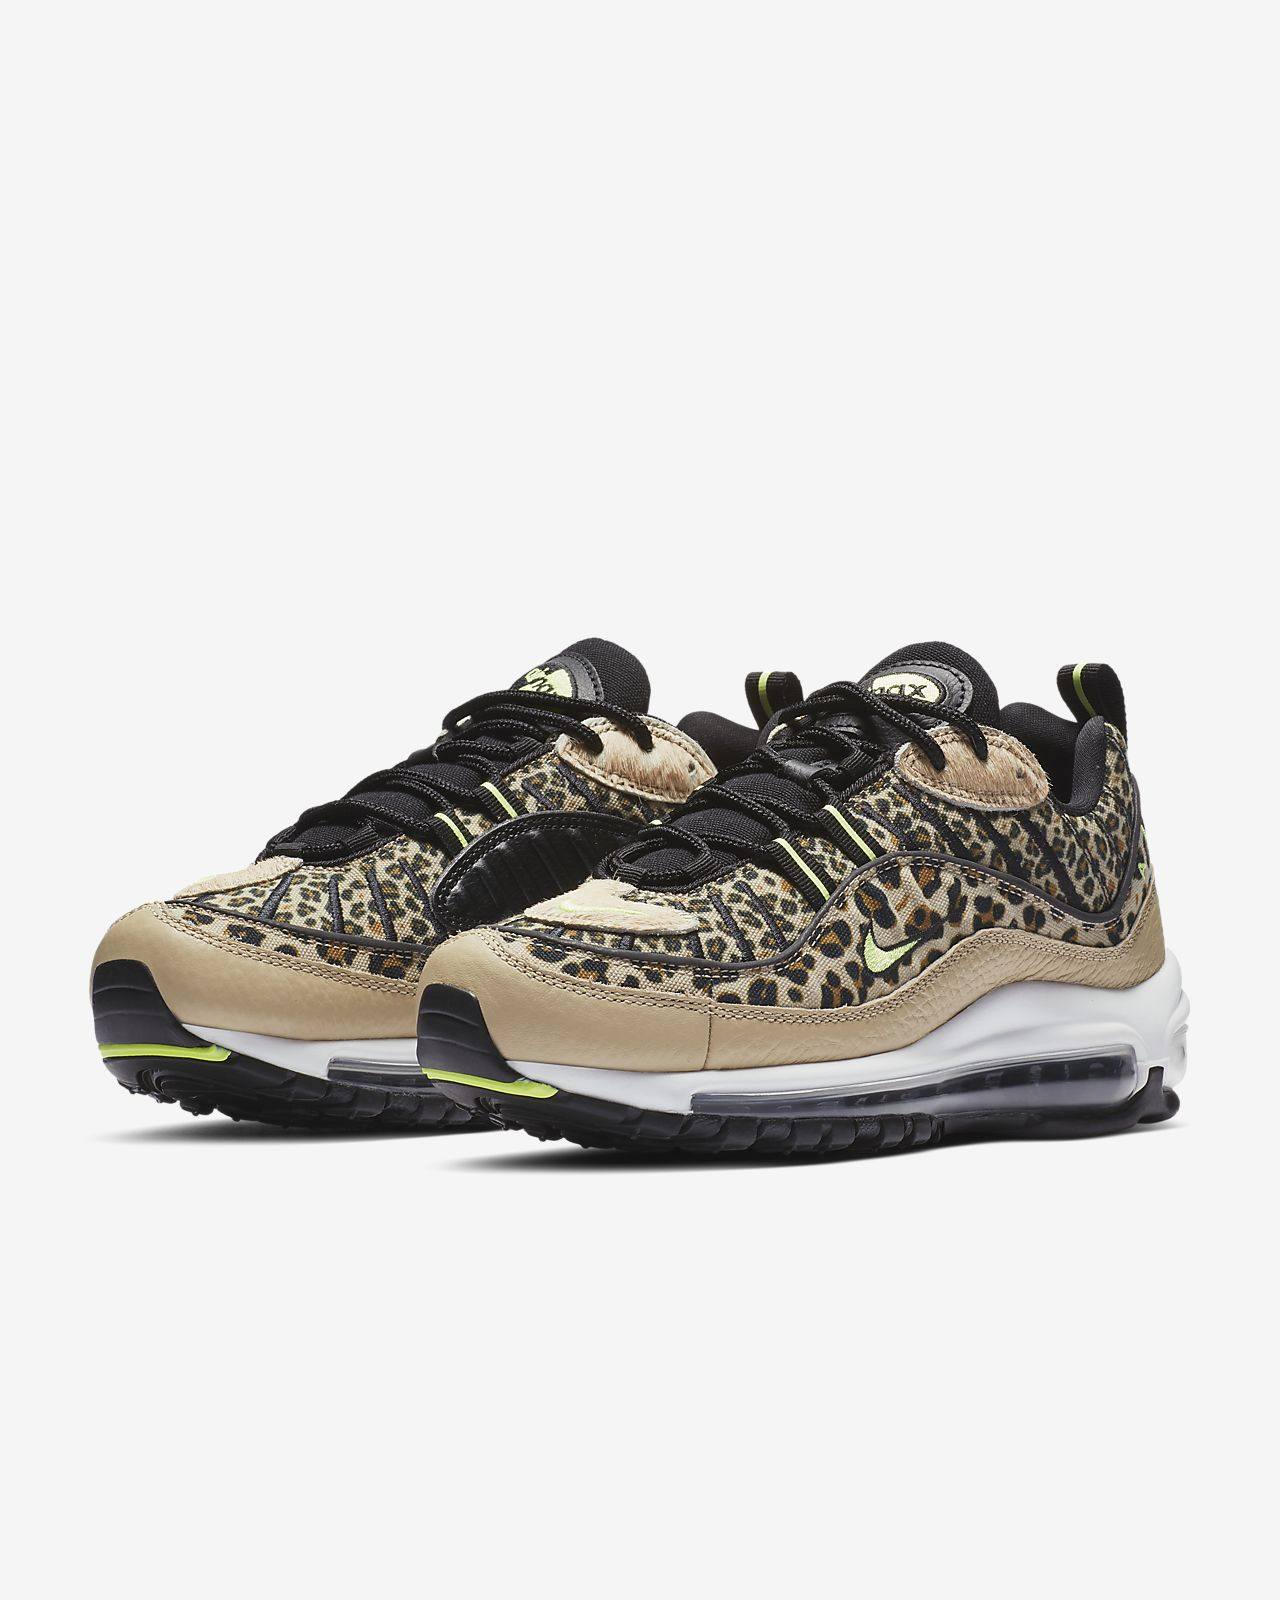 new concept f6b95 08833 ... Nike Air Max 98 Premium Animal Women s Shoe